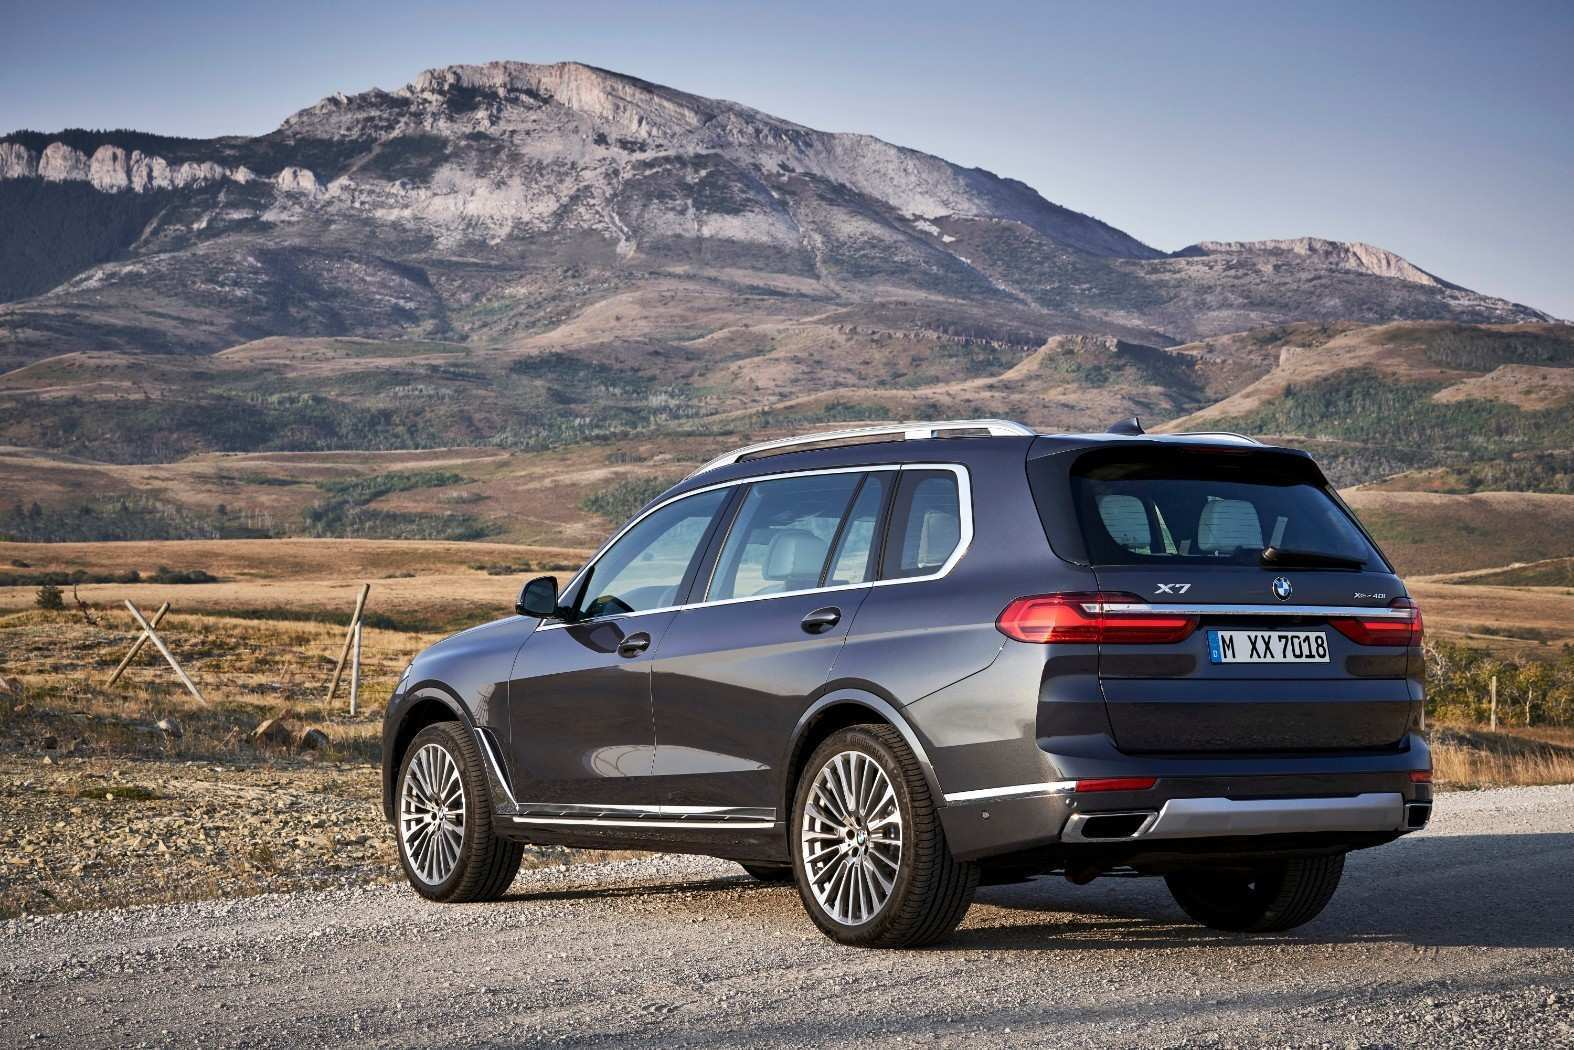 46 All New 2020 BMW X7 Suv Redesign And Review